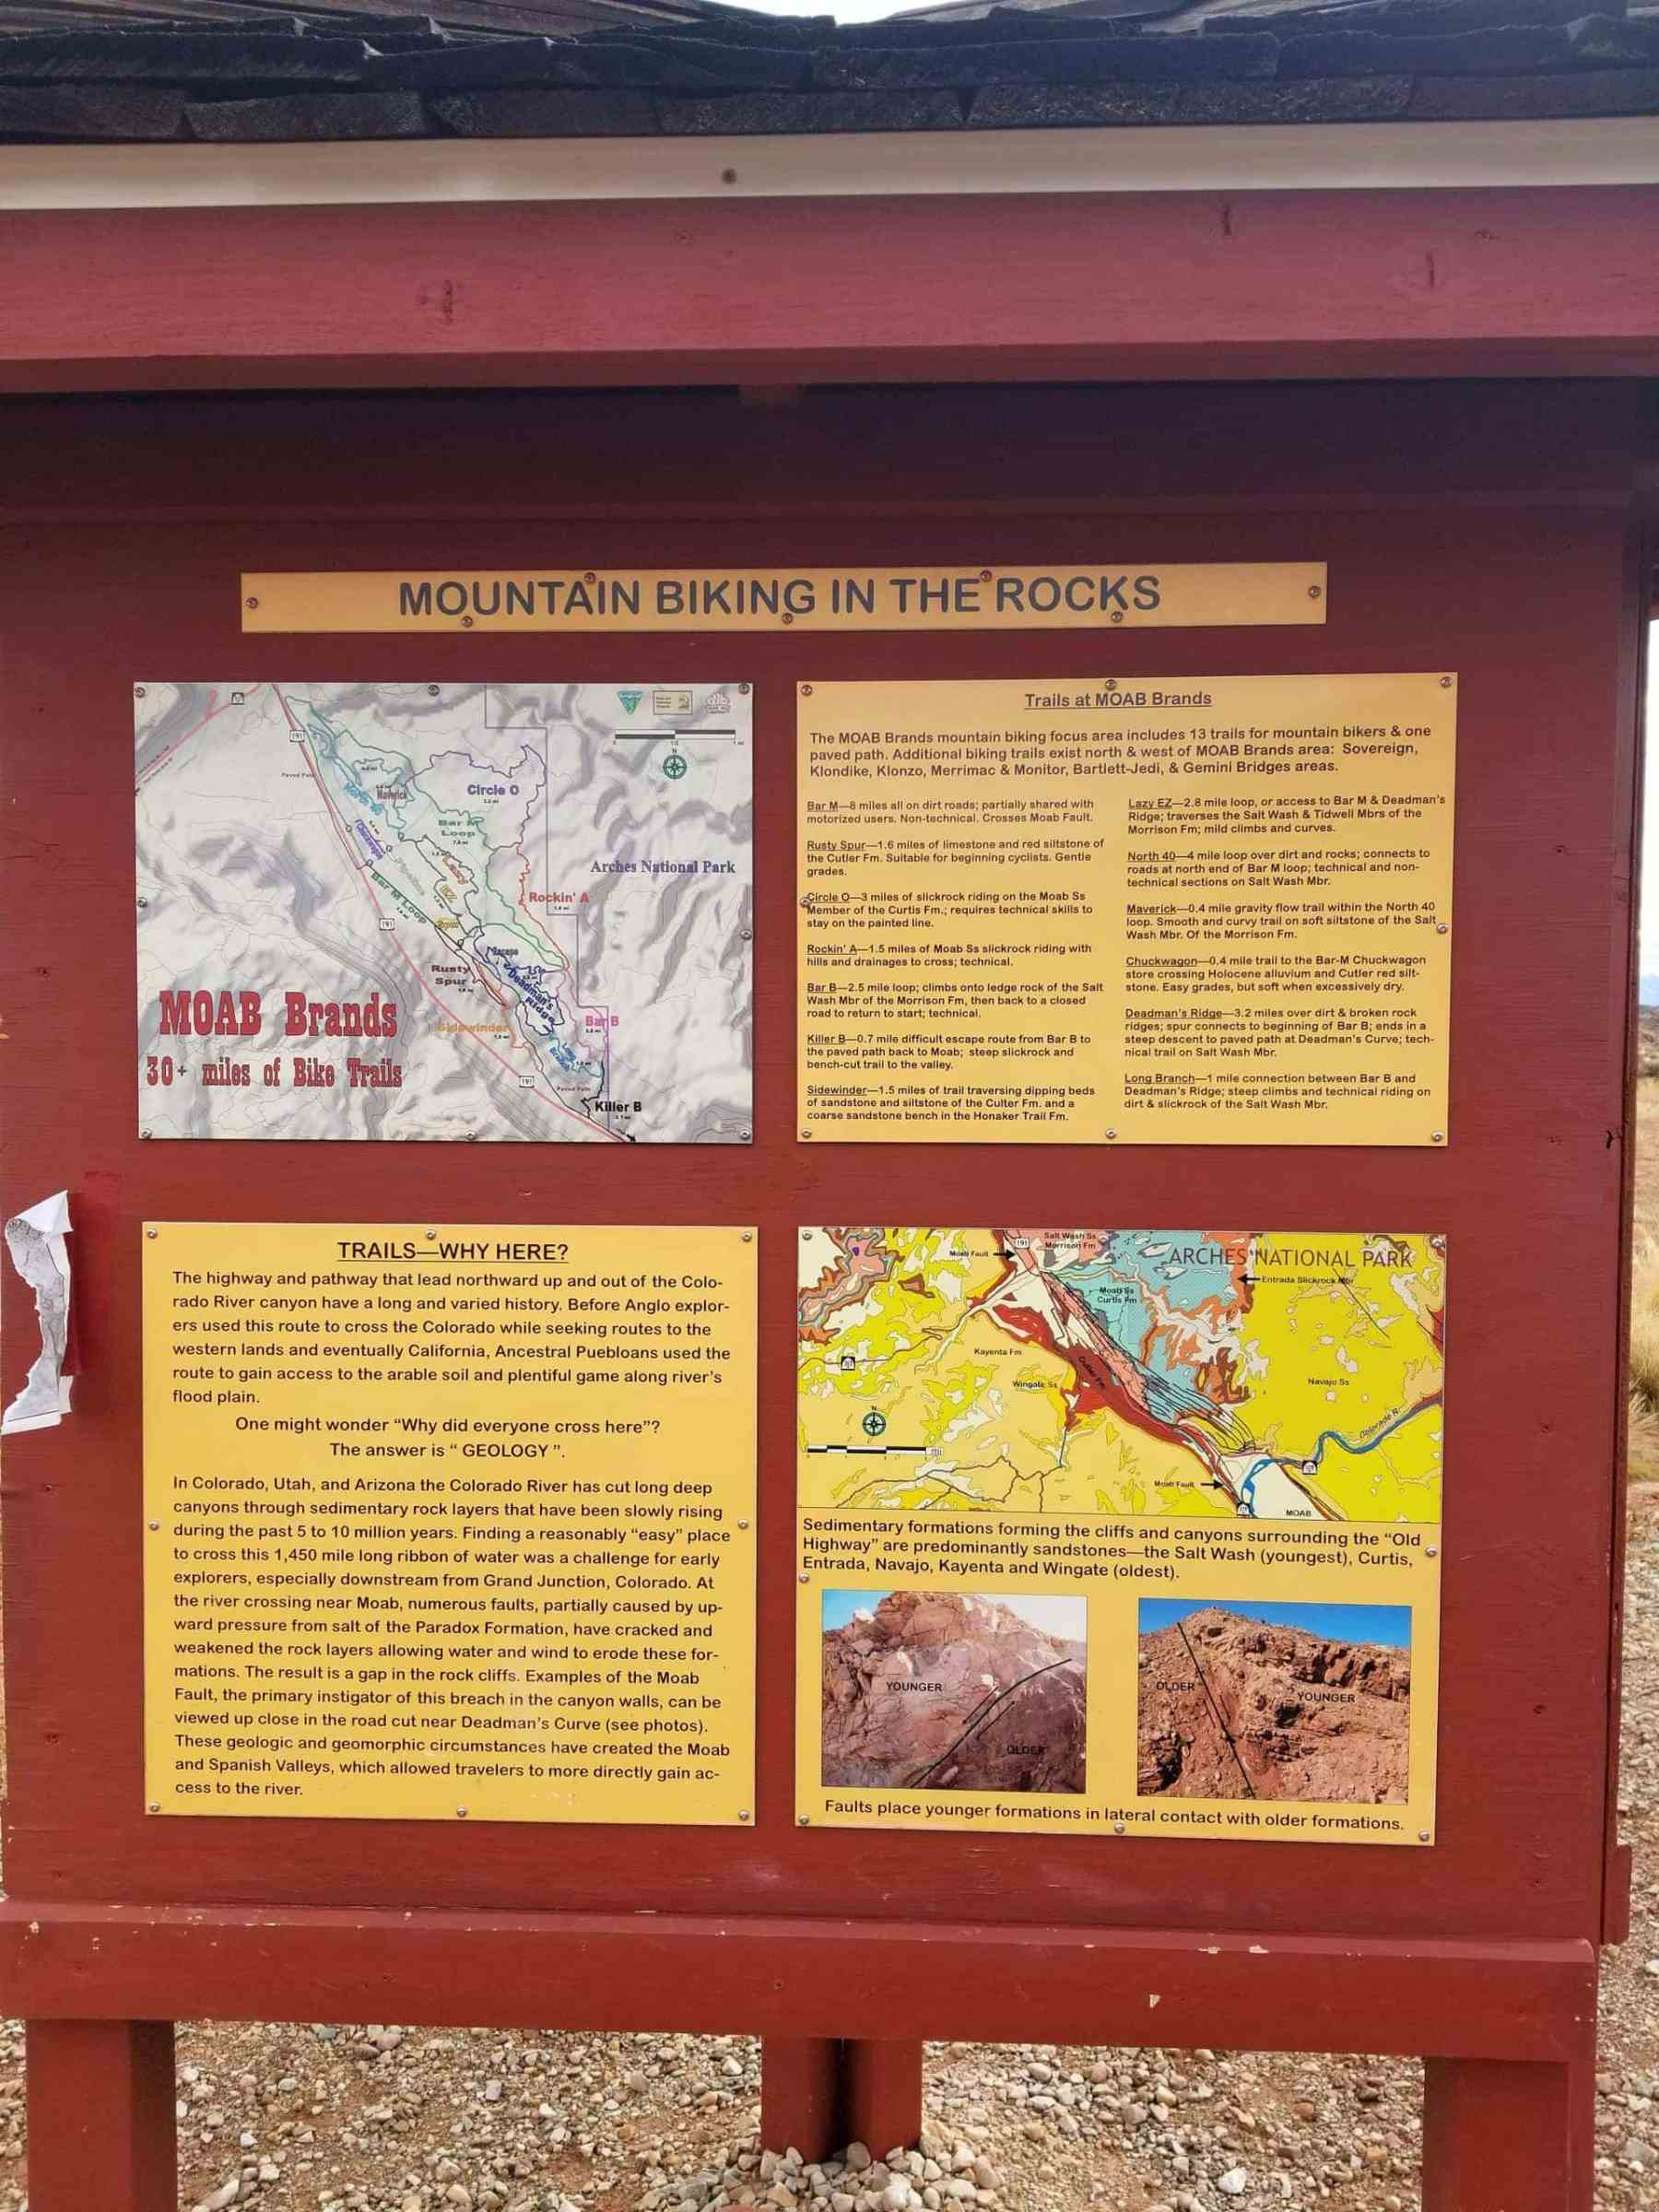 Great signage with trail info